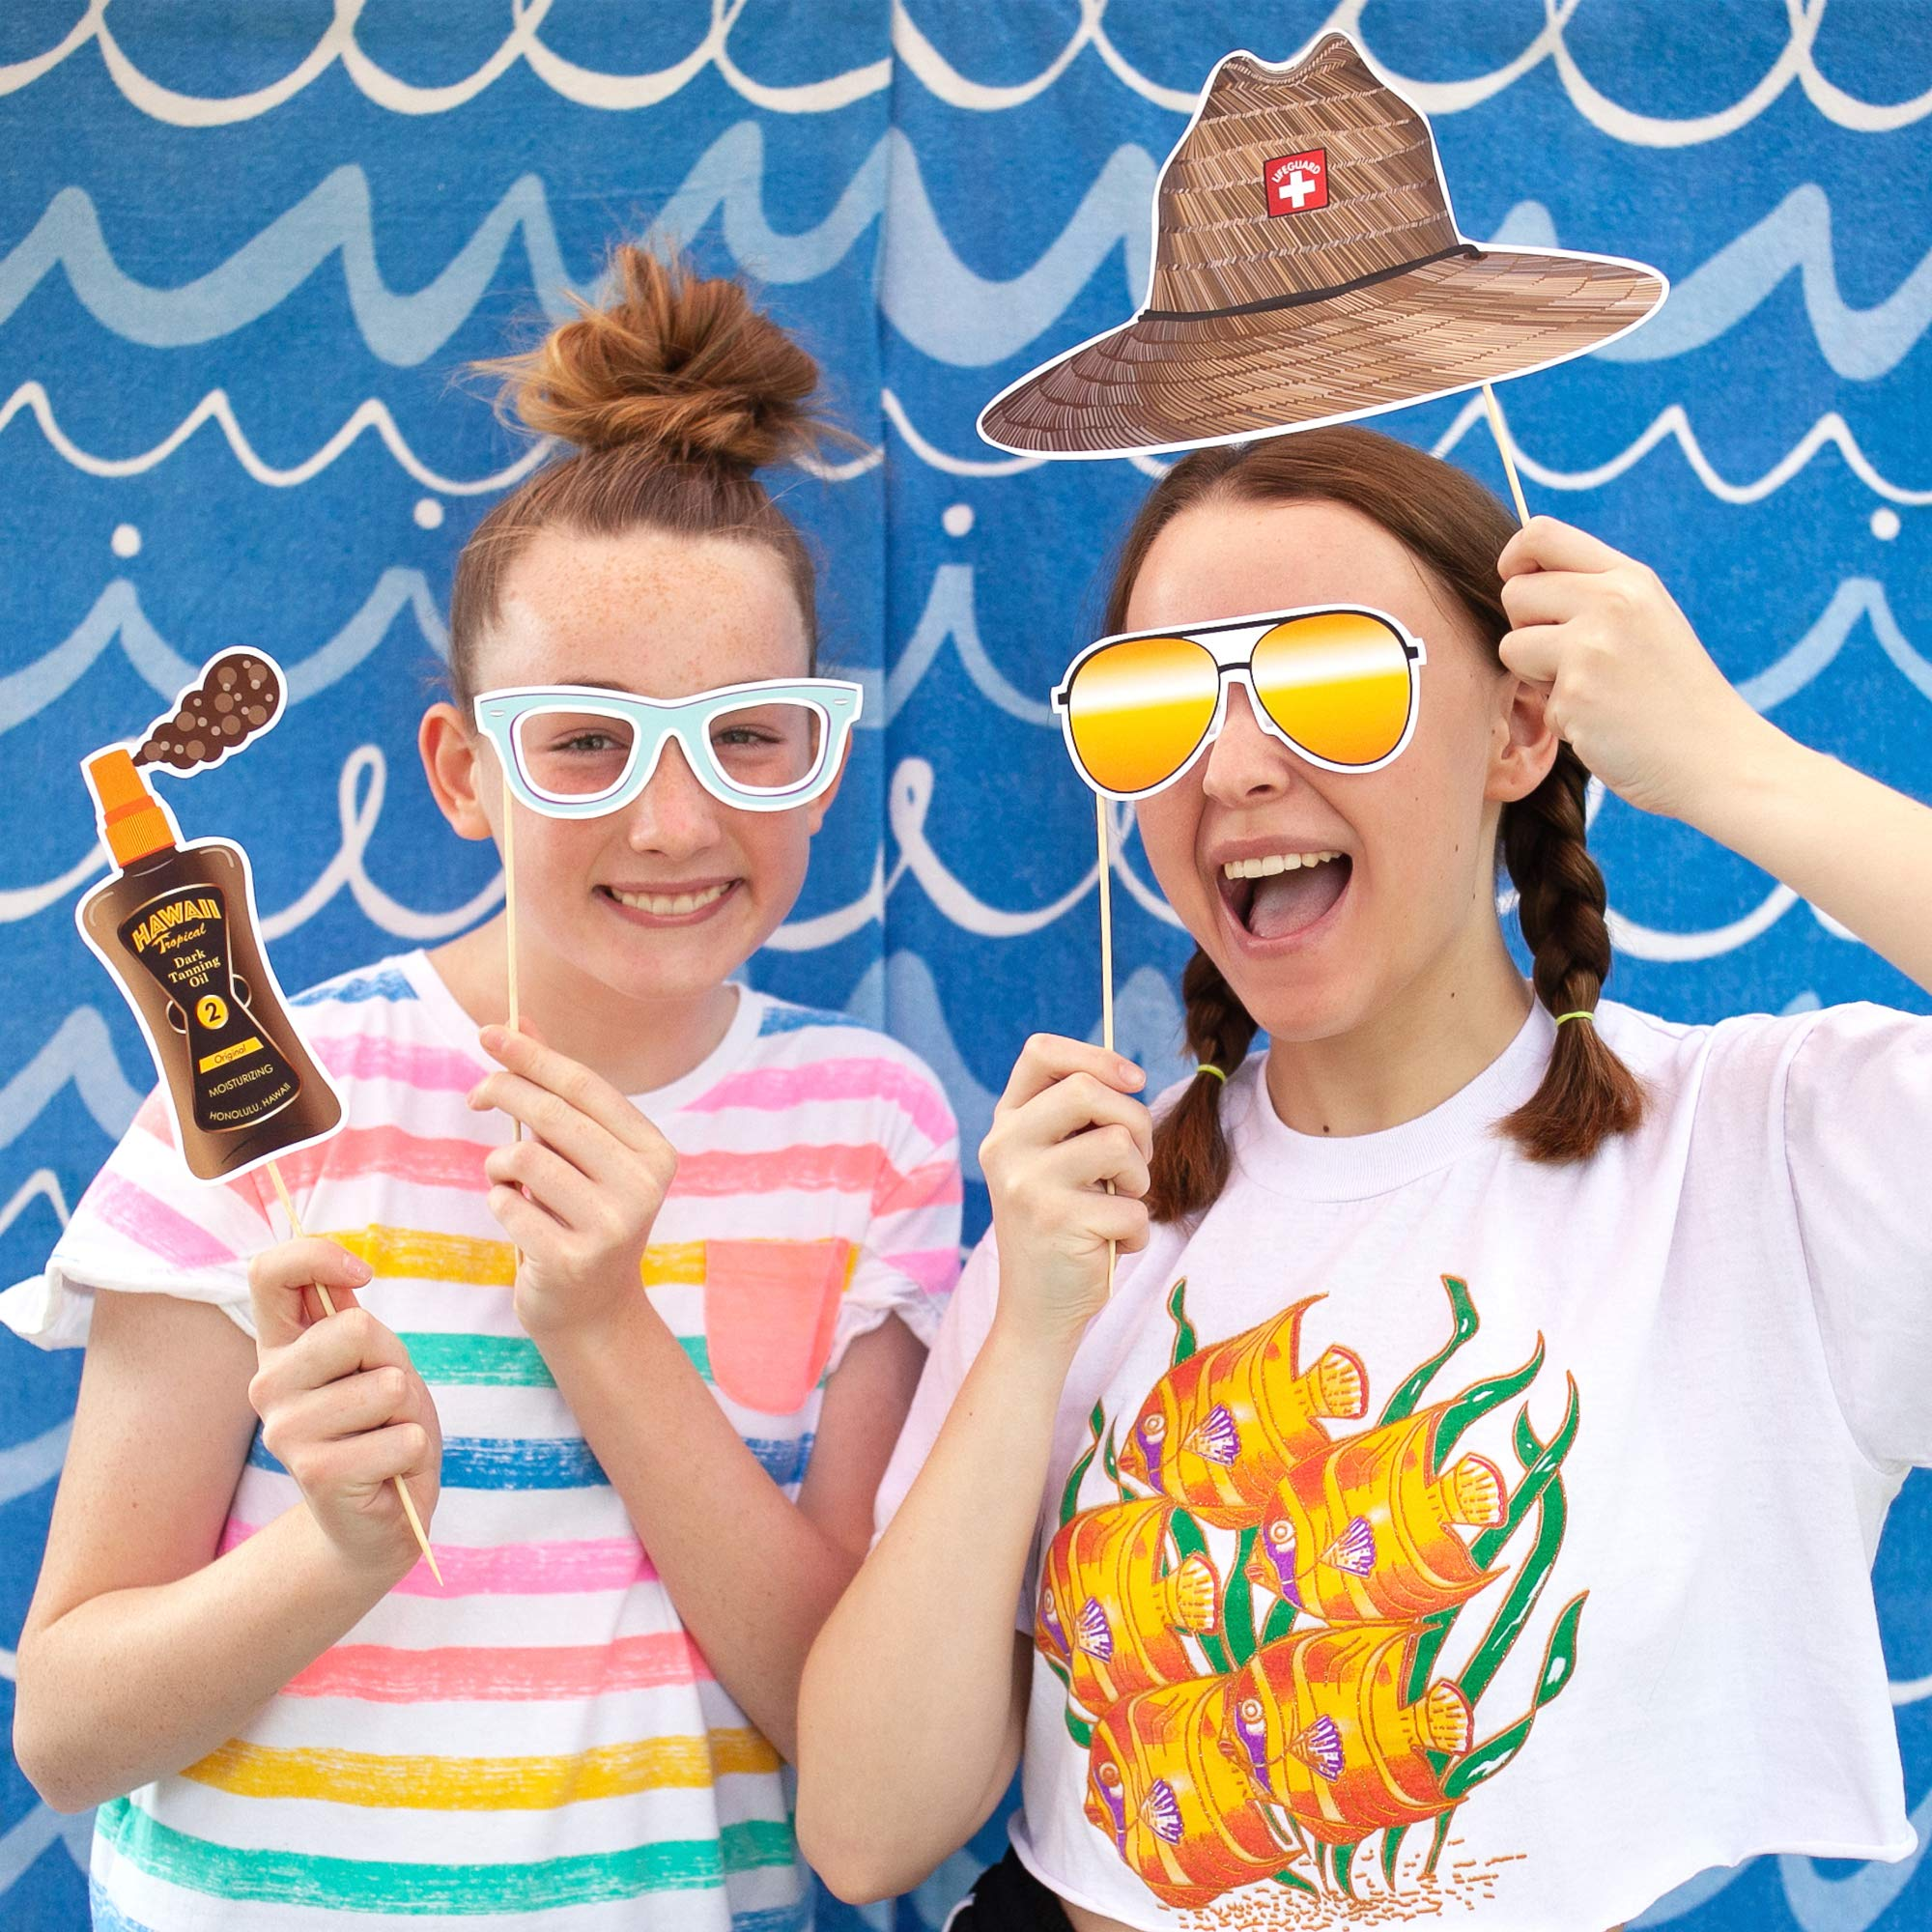 Beach Party Photo Booth Props by Paper and Cake - 18 piece set by Paper & Cake (Image #3)